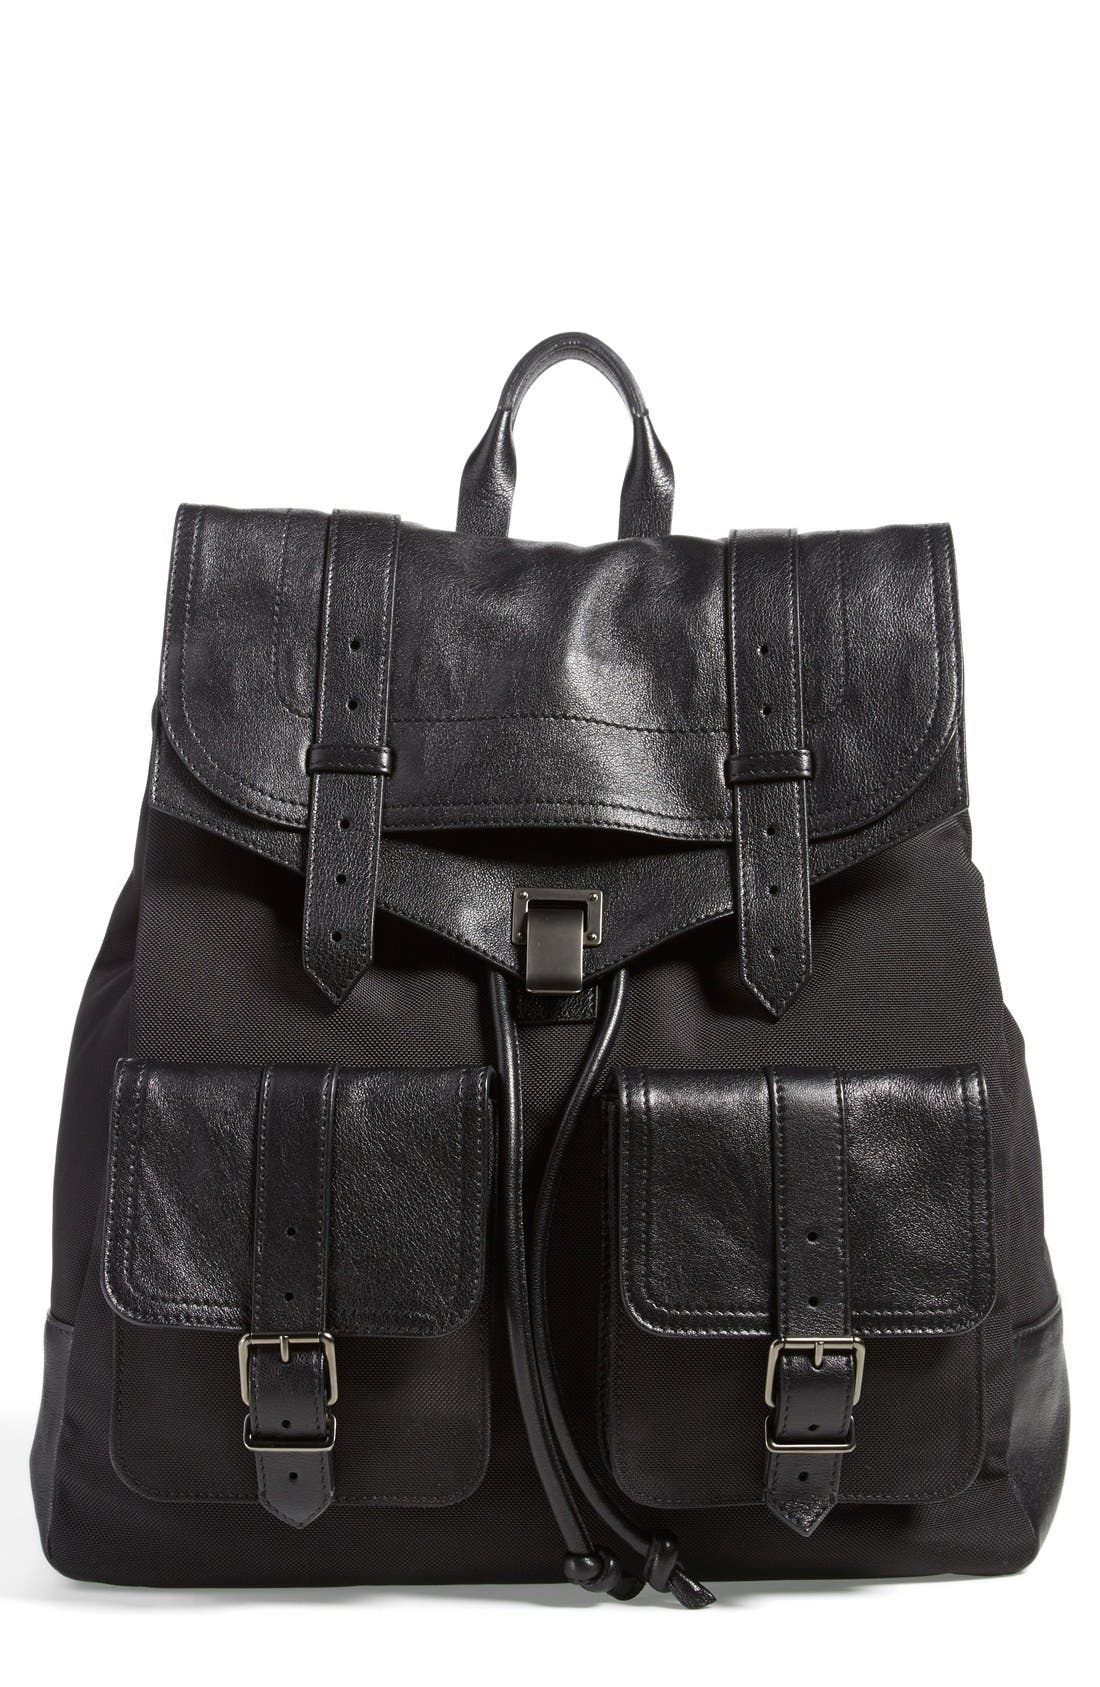 Main Image - Proenza Schouler 'Extra Large PS1' Nylon & Leather Backpack